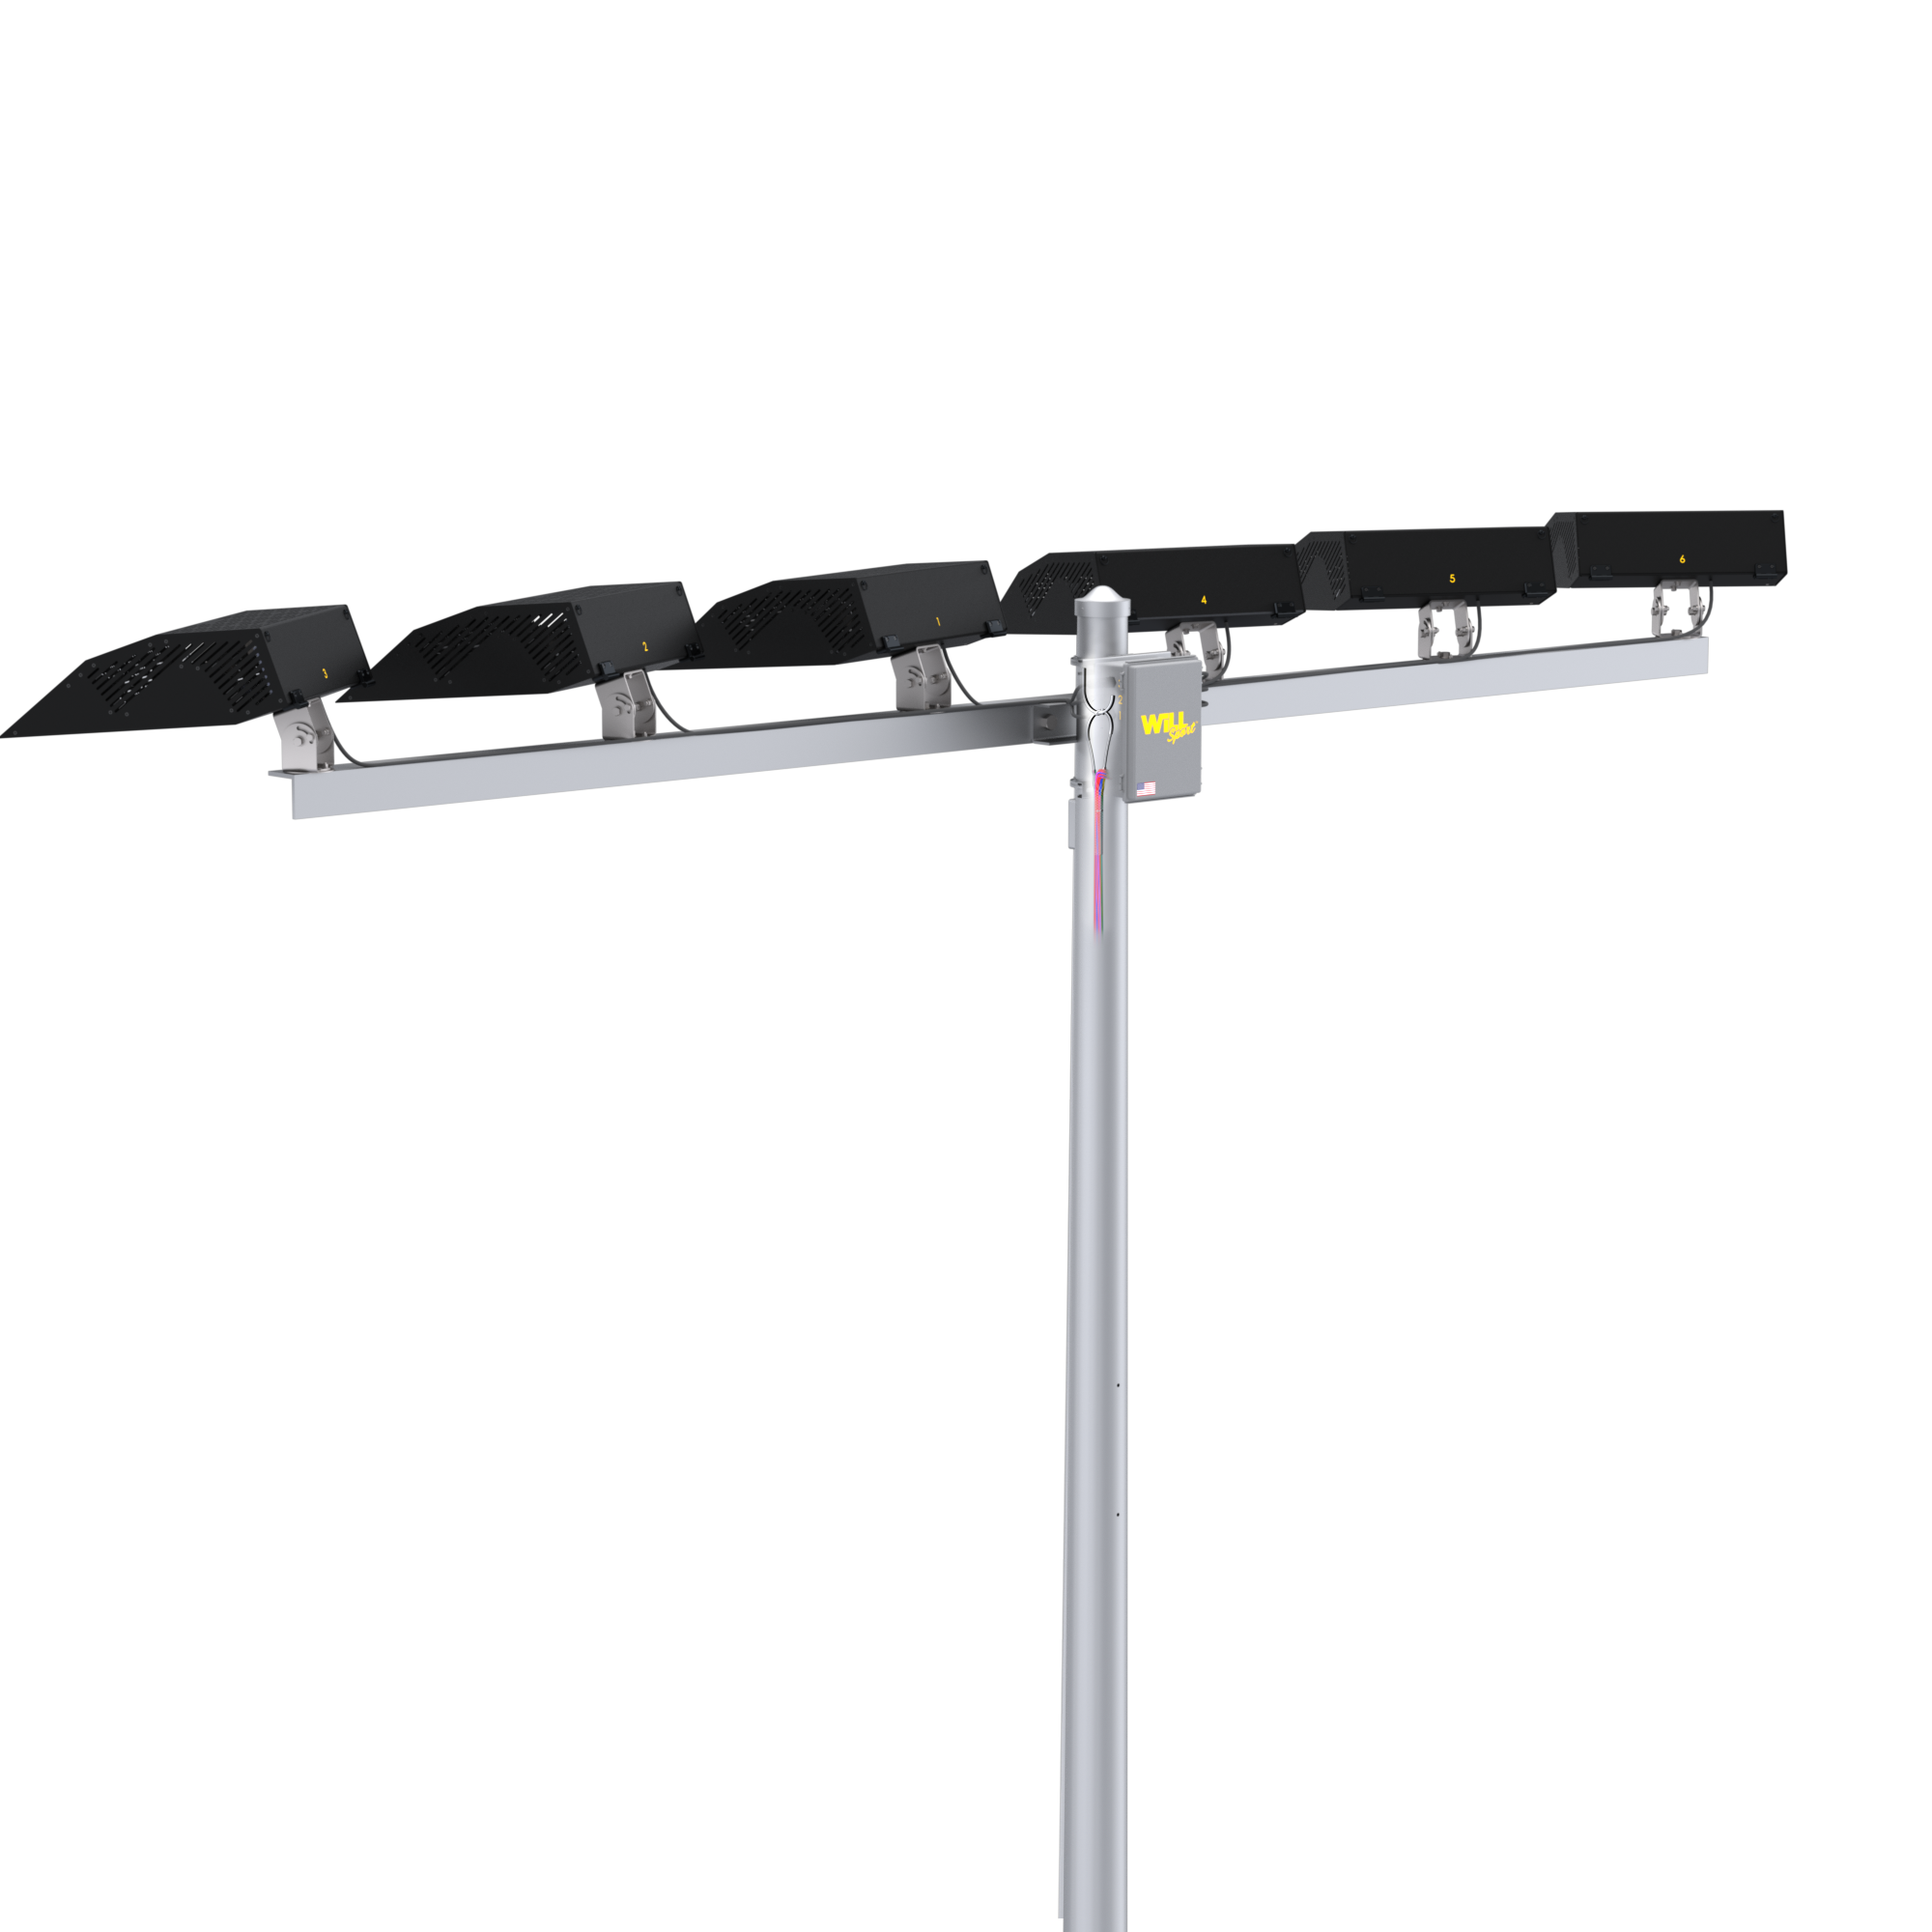 WiLLsport™ KBX-R Sports Lighting System